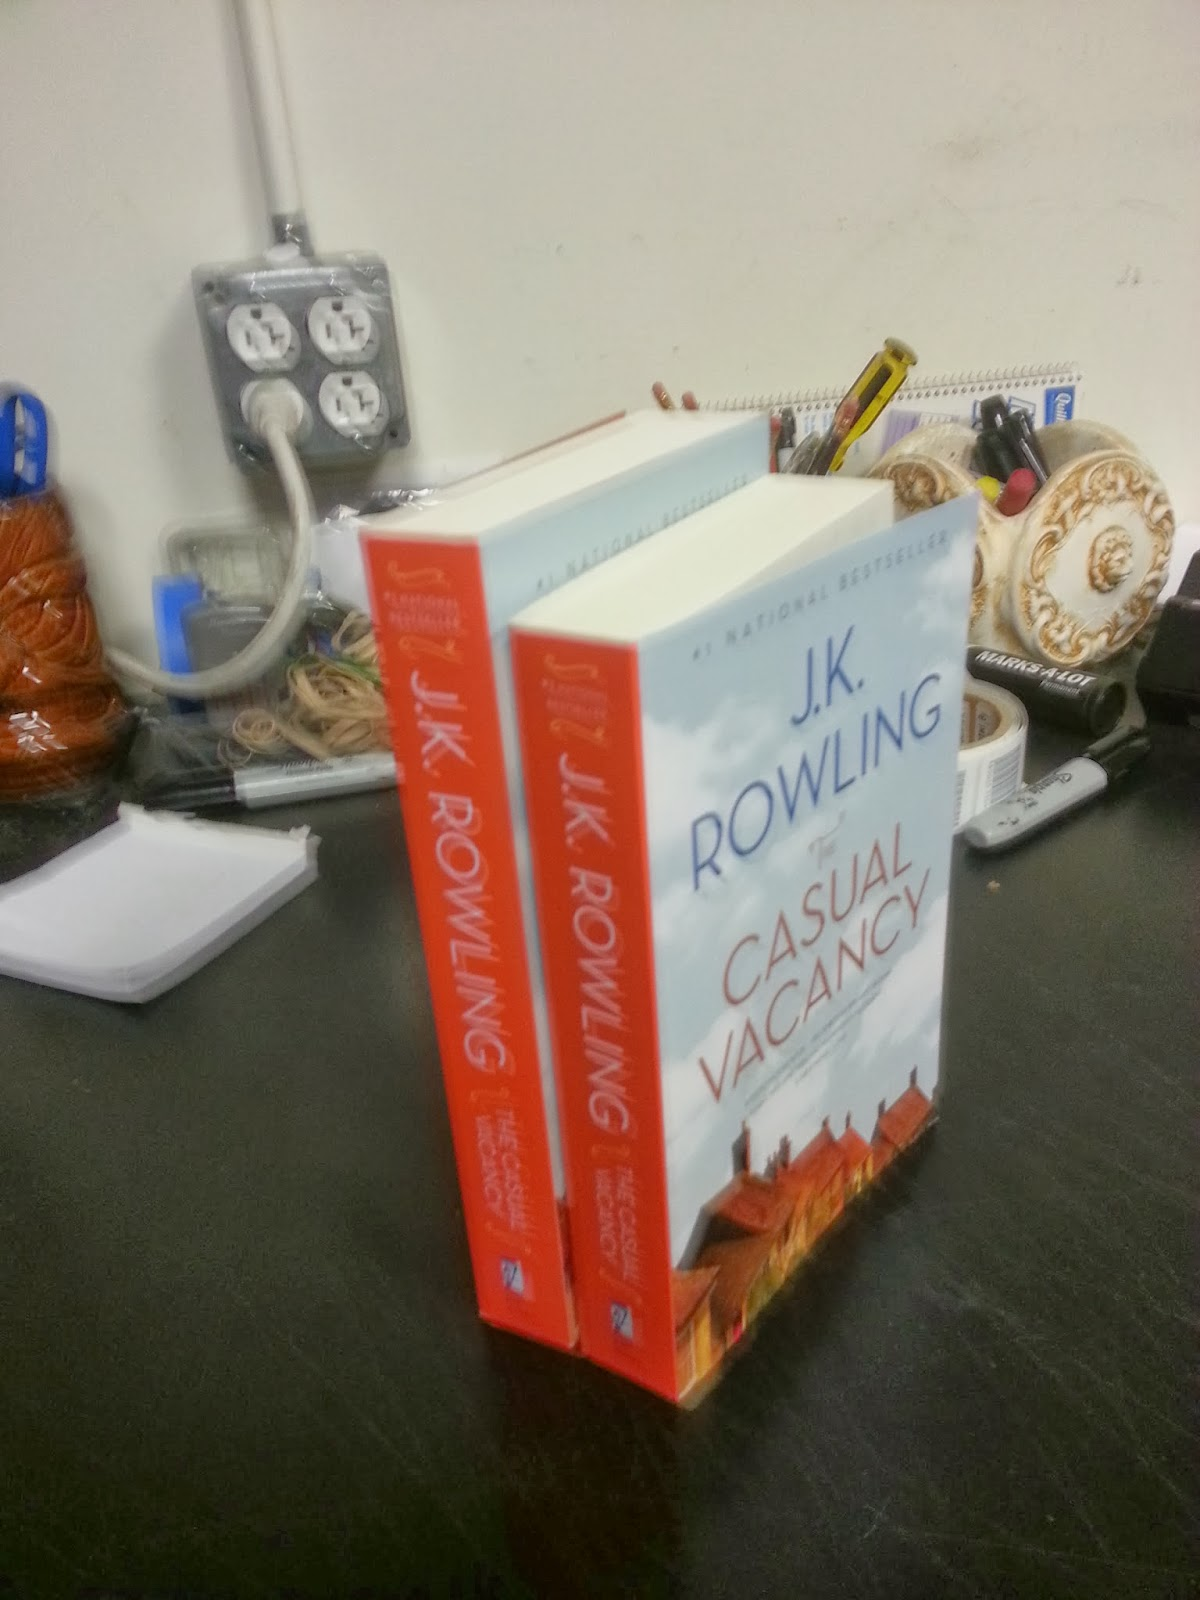 boswell and books fun trim size observations about j k several ago i noted that j k rowling s the casual vacancy was a bit oversized compared to the other books on the new paperback table